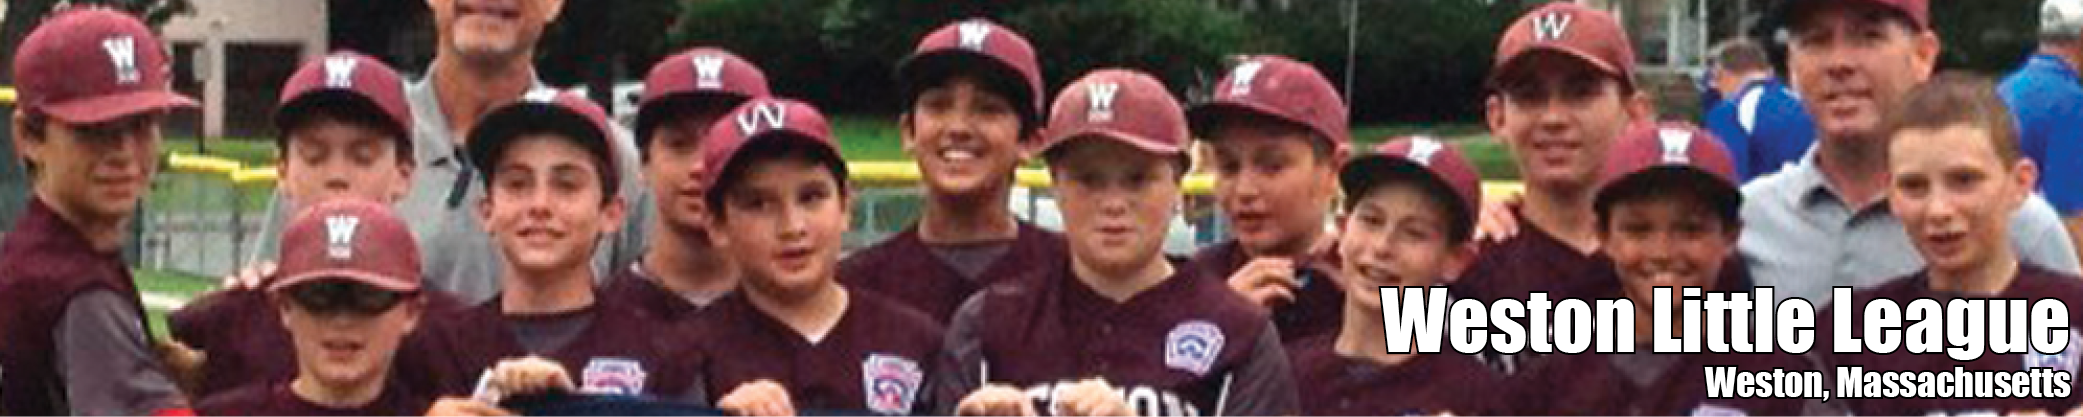 Weston Baseball, Baseball, Run, Field